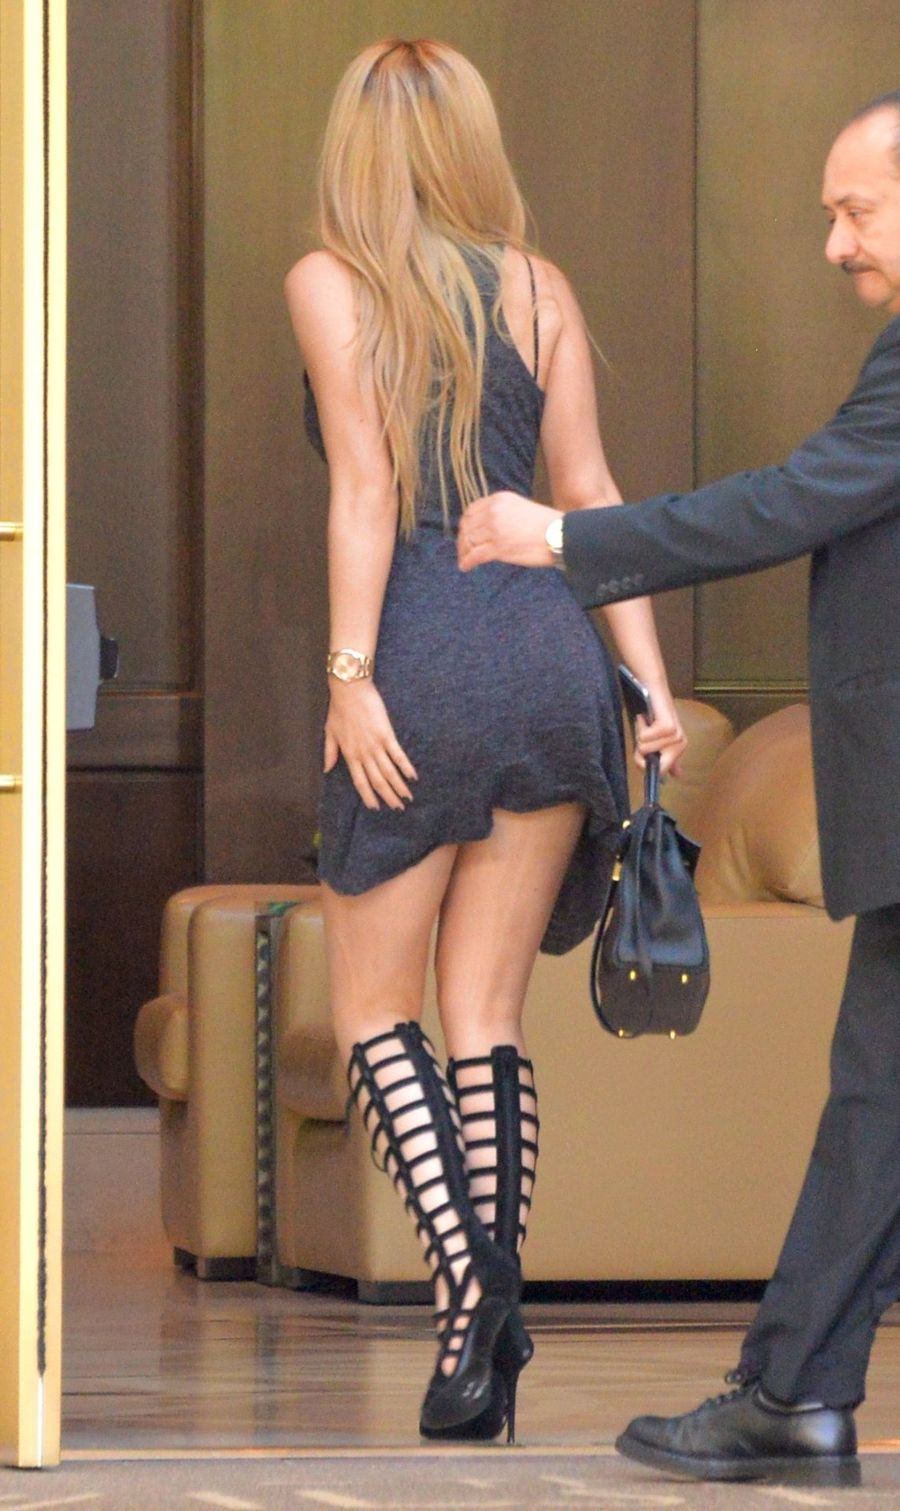 Kylie Jenner Entering a Hotel in Los Angeles